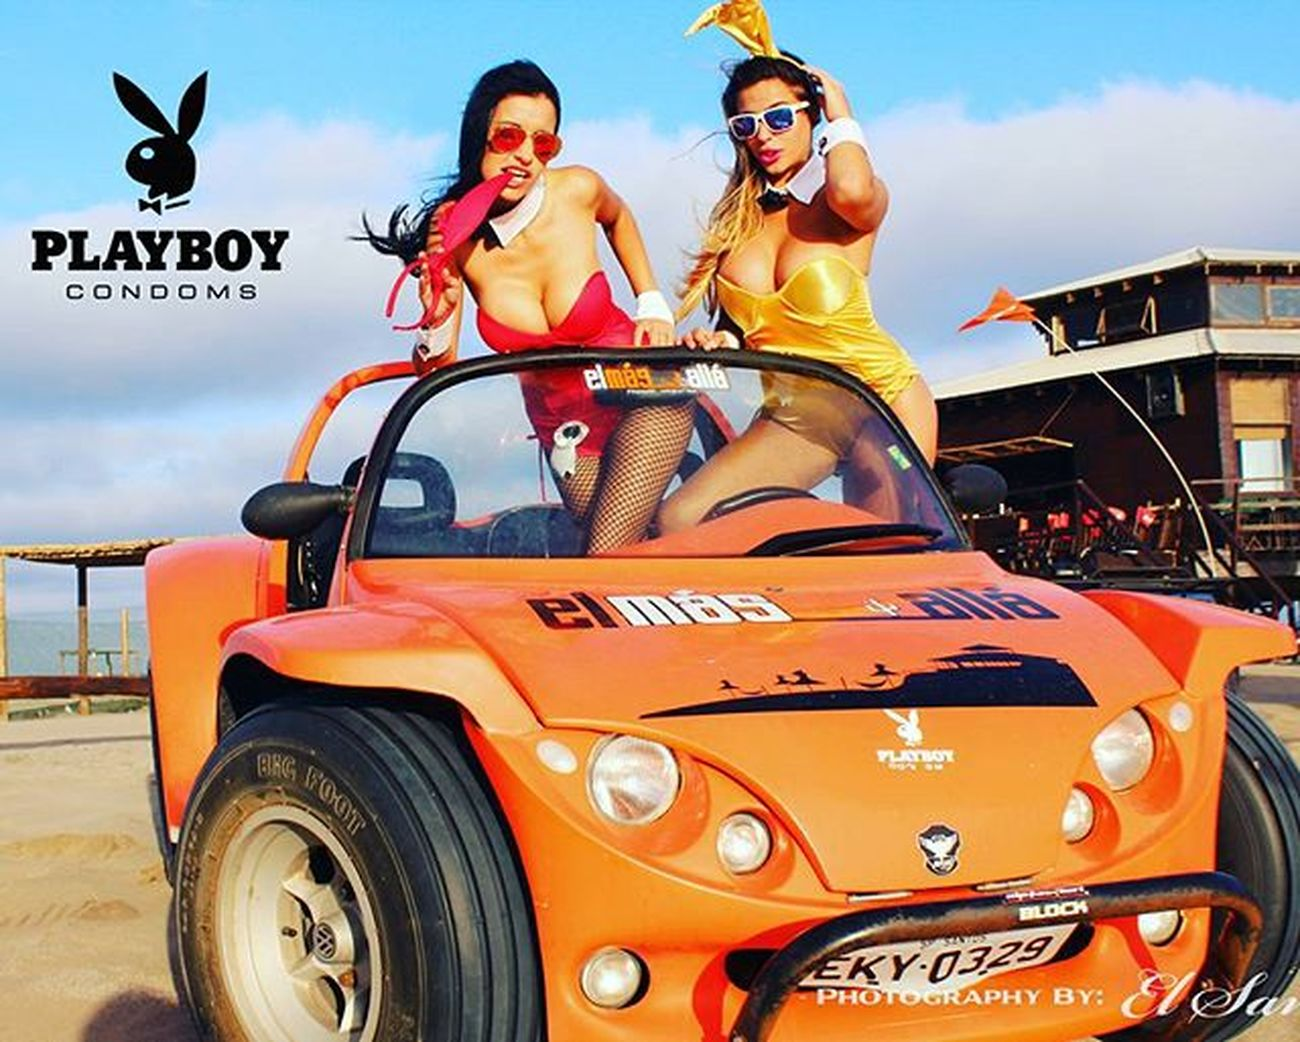 Playboycars 2015  Pinamar Glamorous  Show Bunnies Playmates Photooftheday Ph Elsanto Presents Unico en Sudamerica Be Playboyculture Fantasy Night by Playboycondoms Playboyintimates Playboyfragrances